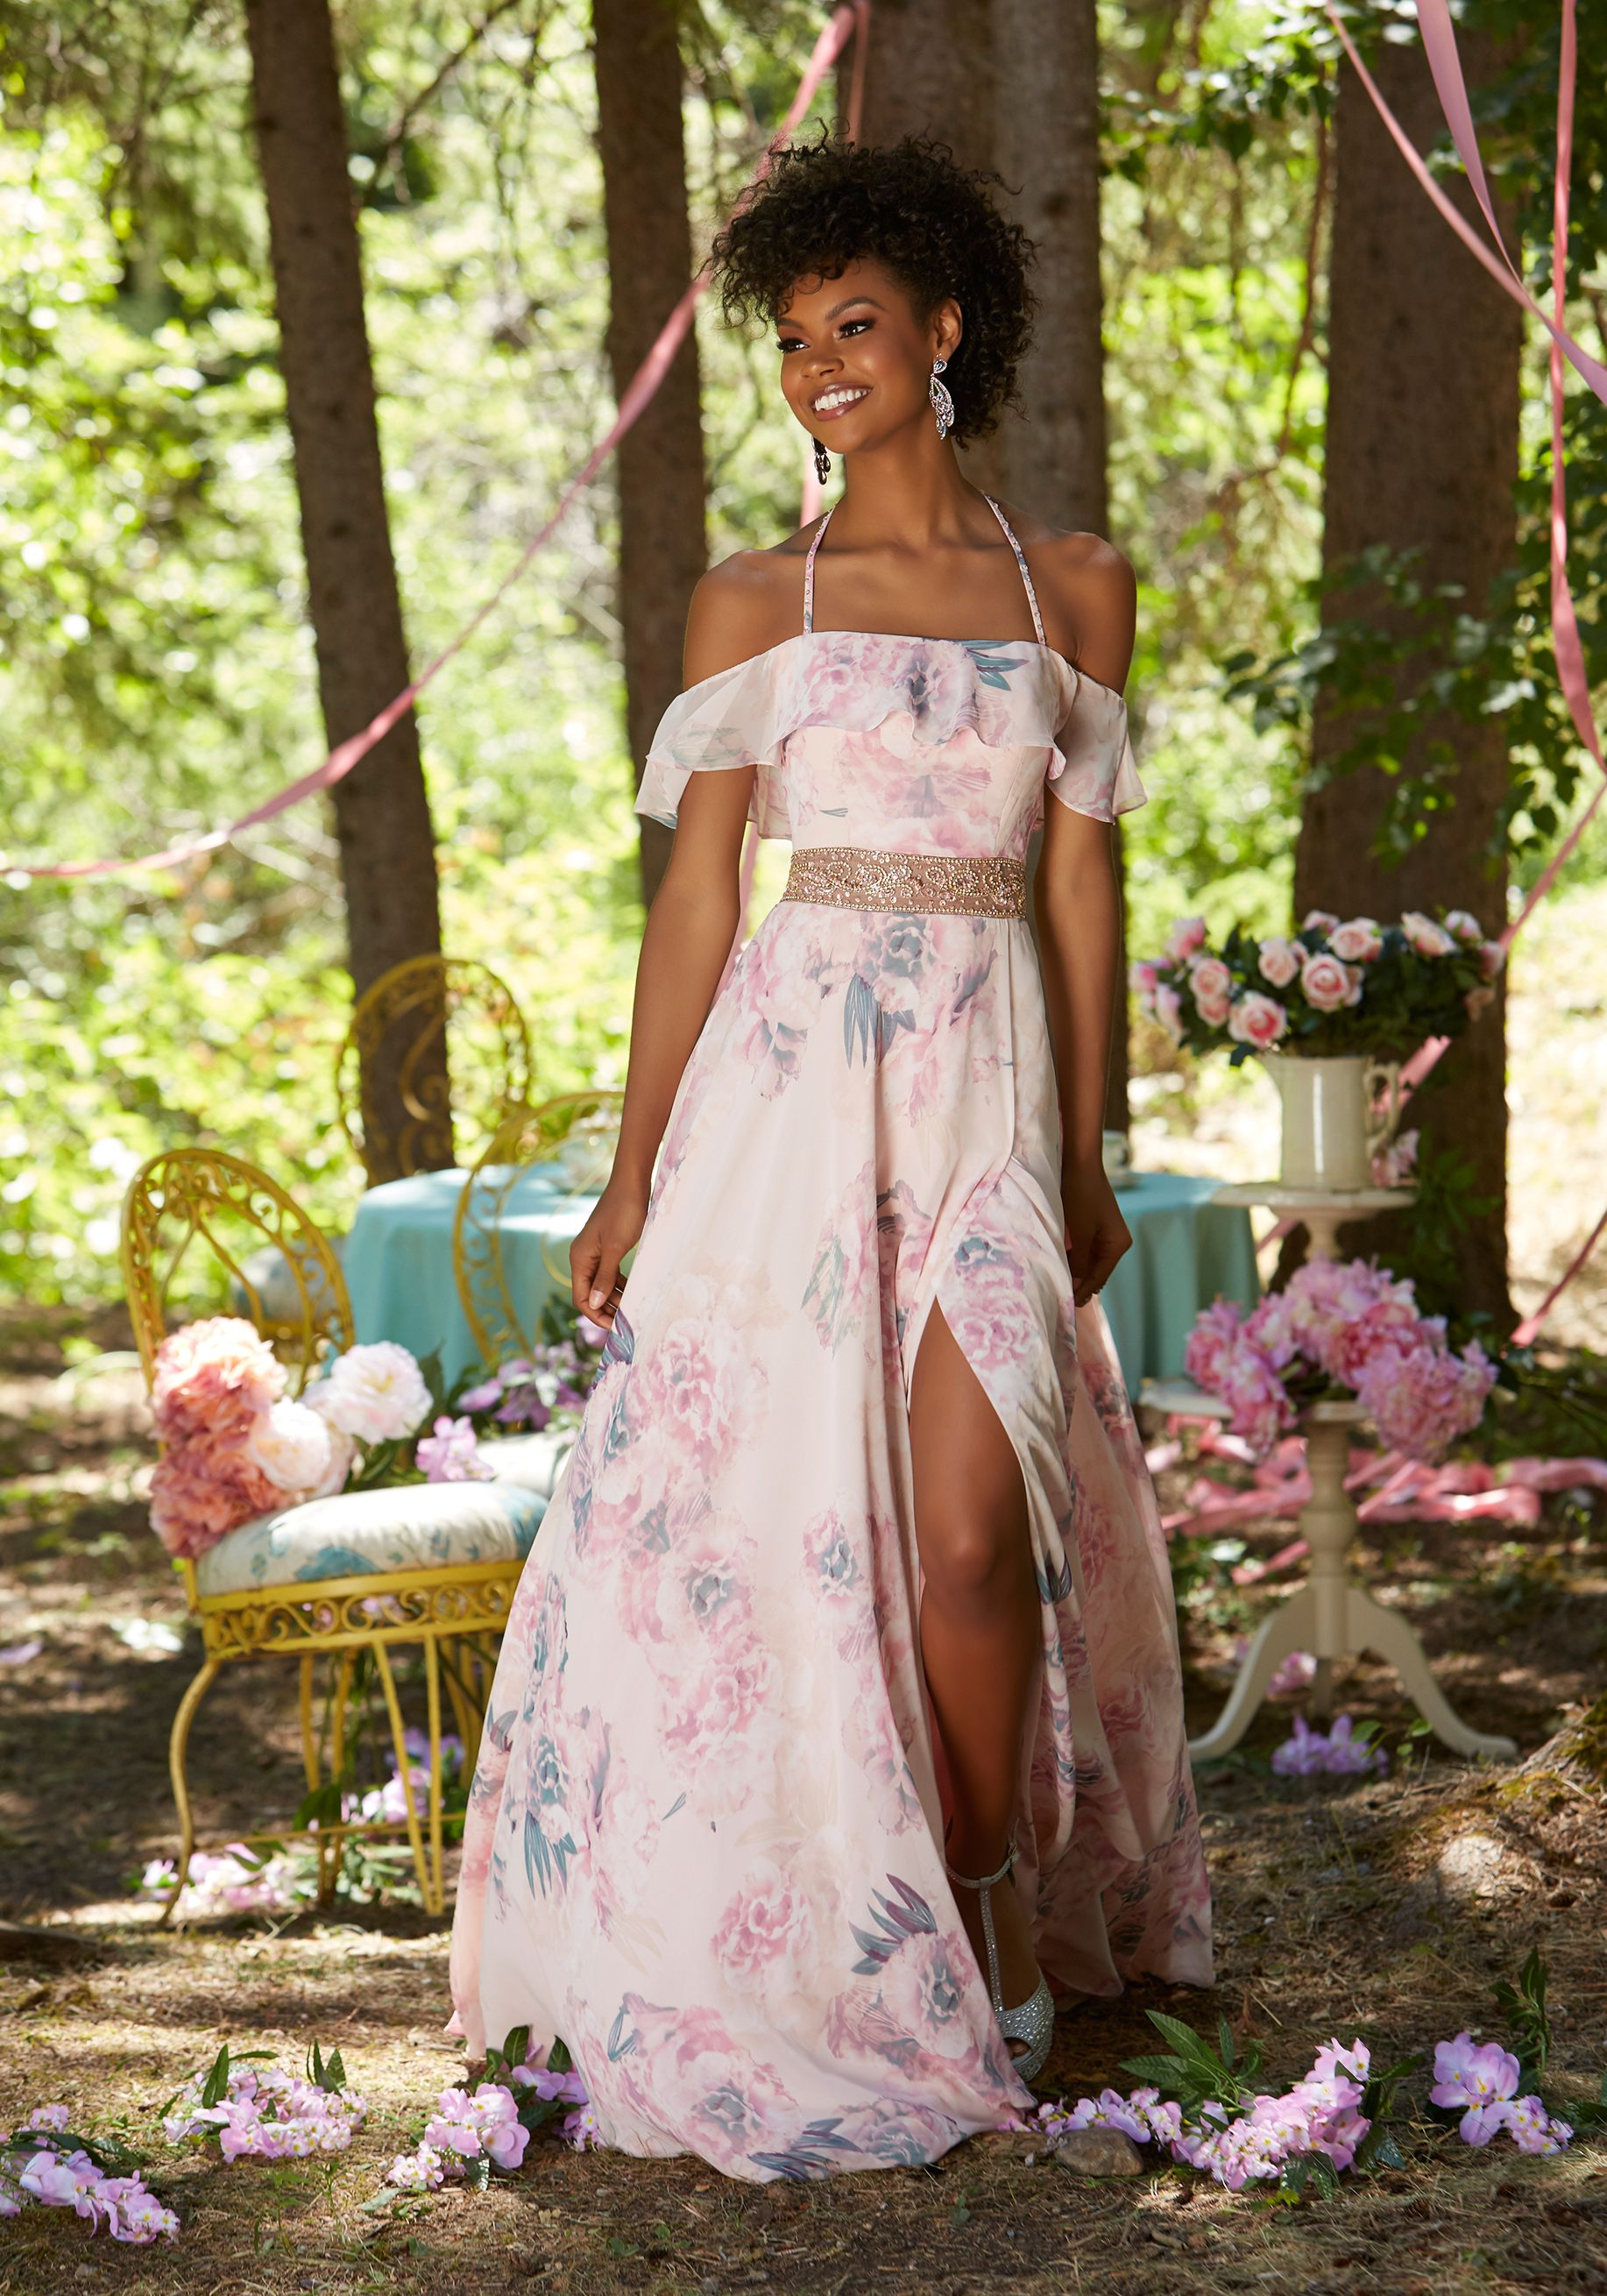 b7ae4a75ad1 Prom Dresses by Morilee designed by Madeline Gardner. Floral Printed  Chiffon Prom Dress with Off-the-Shoulder Ruffled Neckline